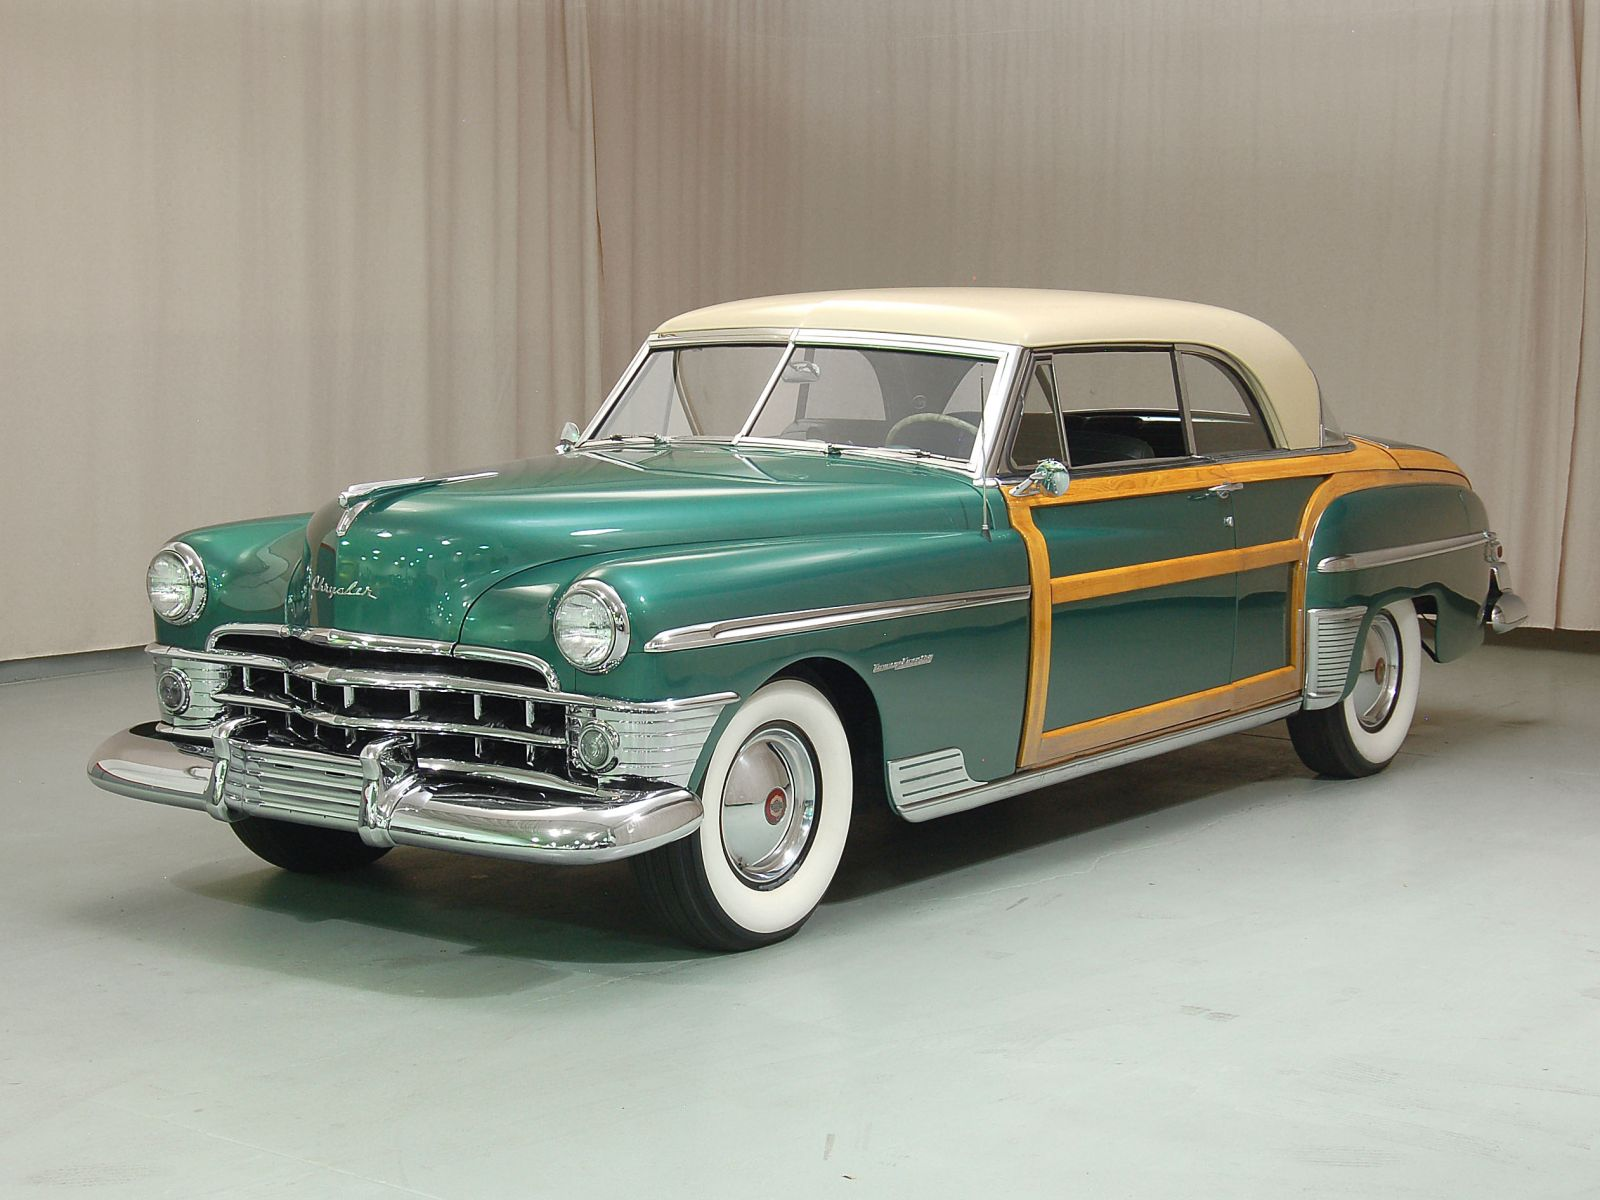 1950 Chrysler Town & Country Full hd wallpapers